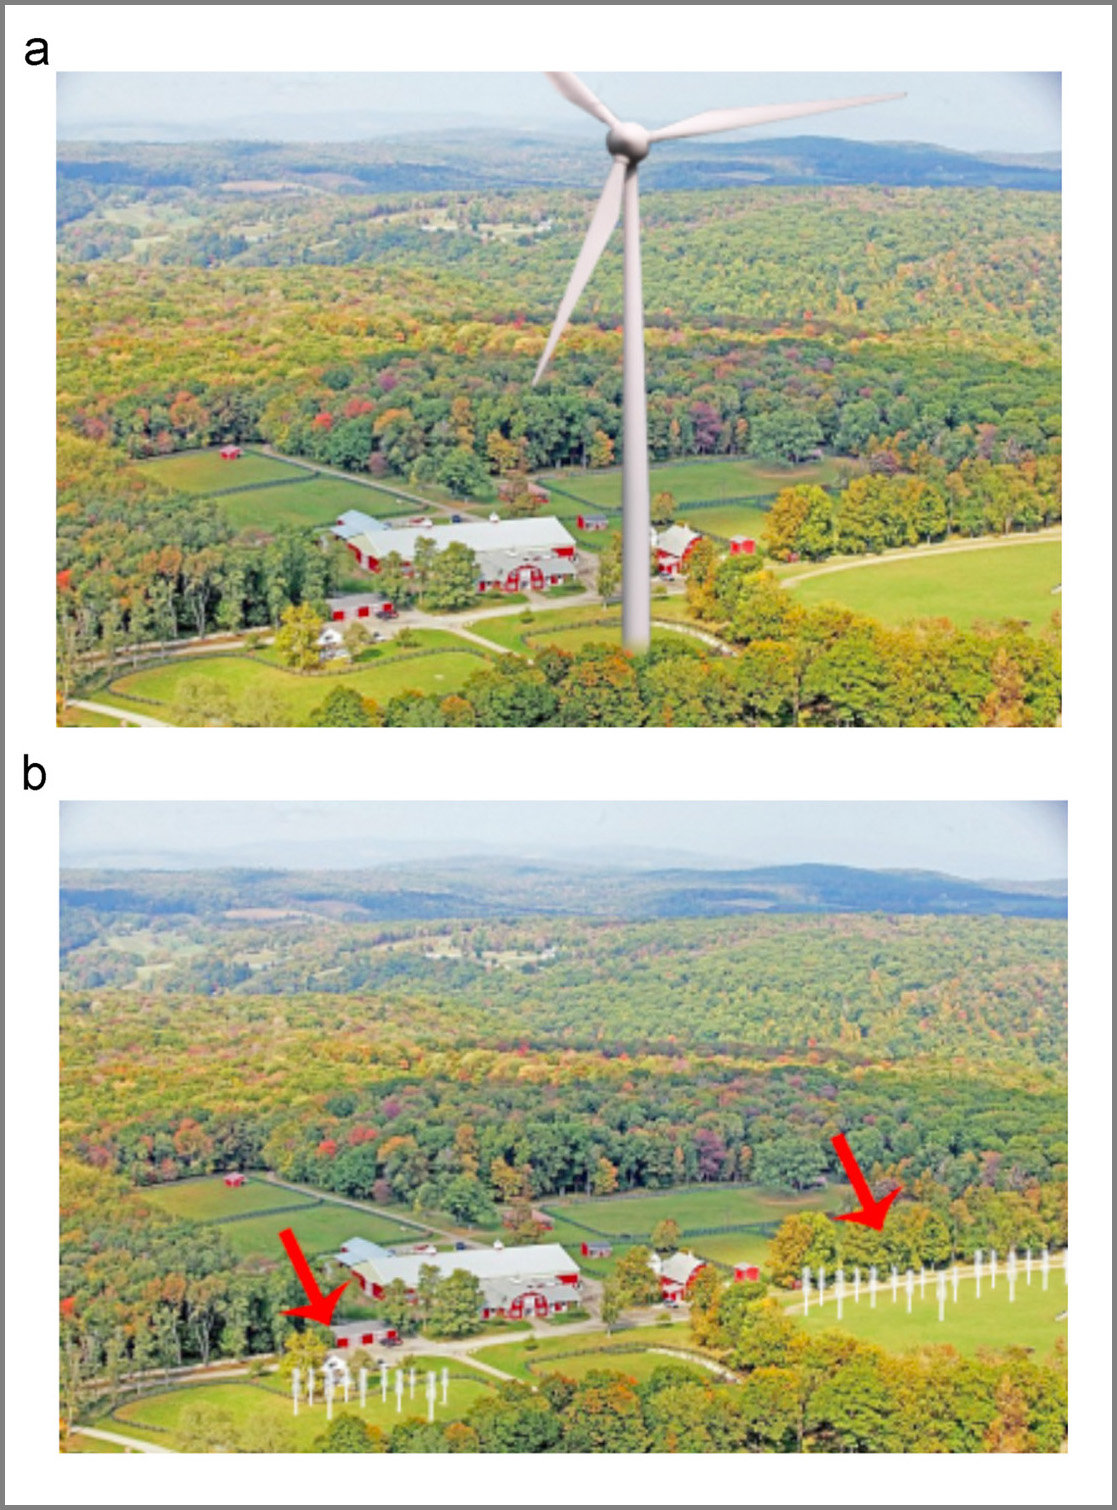 Research suggests vertical axis turbines could increase public support for new wind energy installations